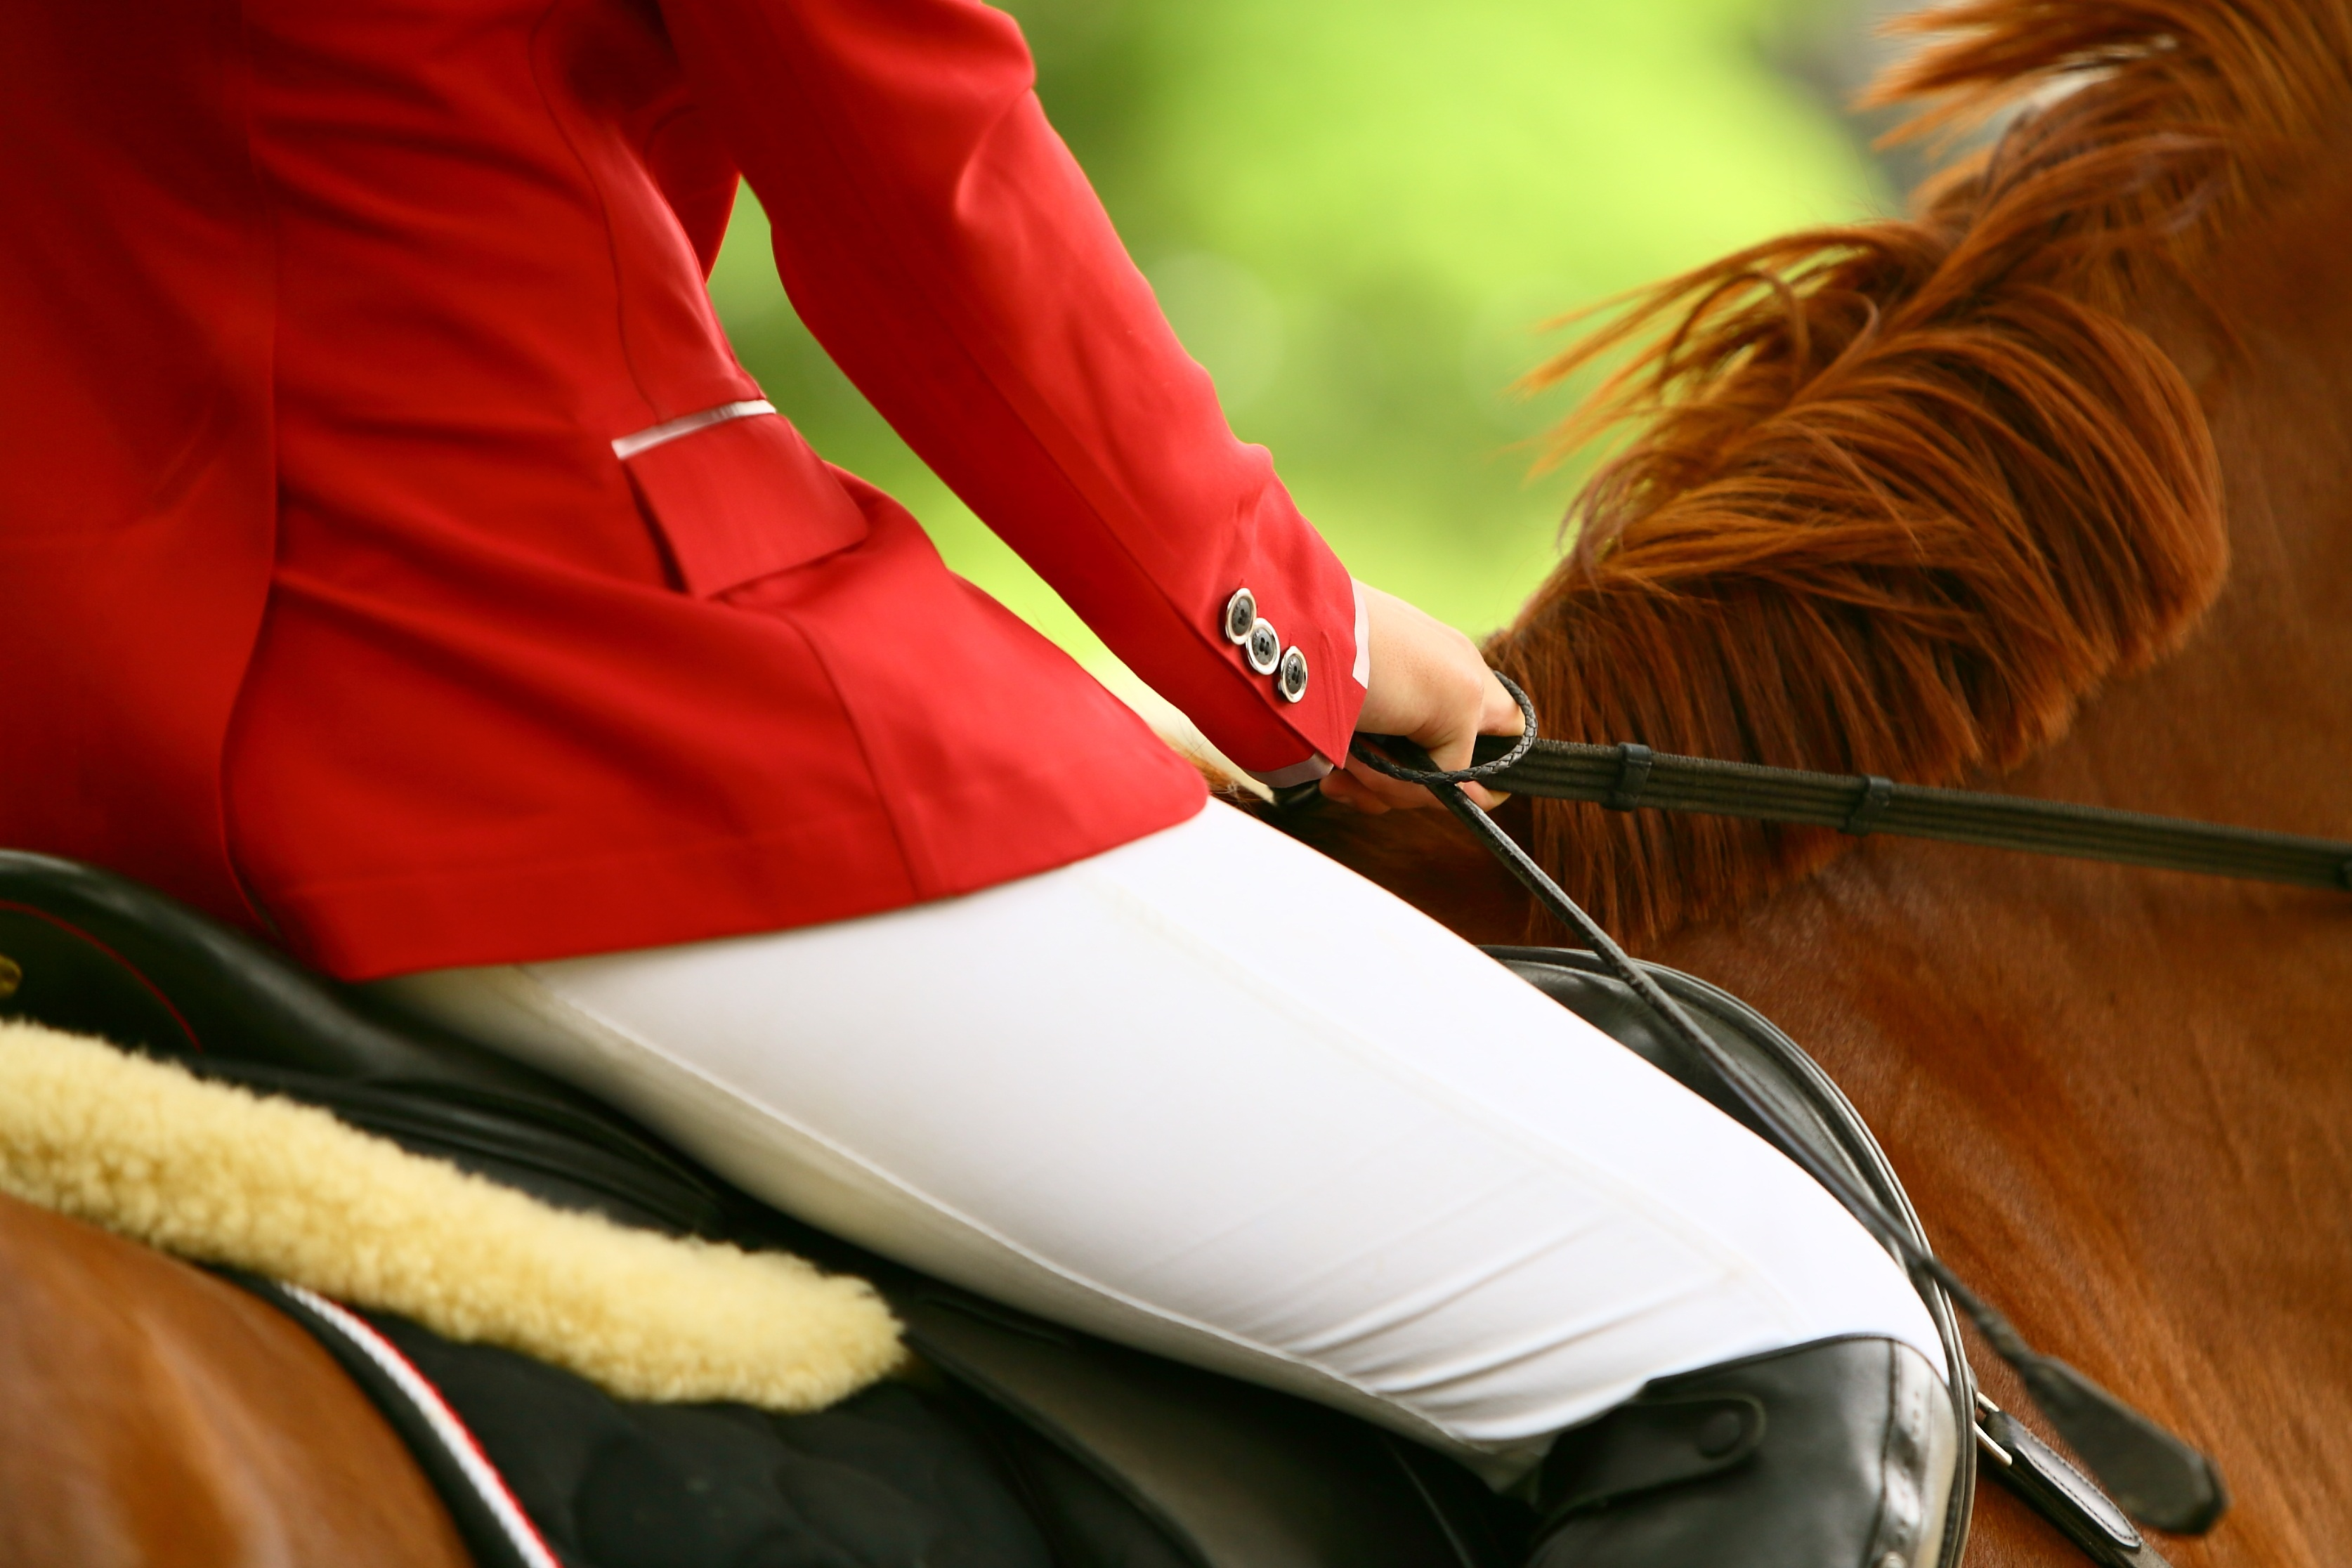 Trade Stands Hickstead : Heading to hickstead? in the country magazine showcasing all